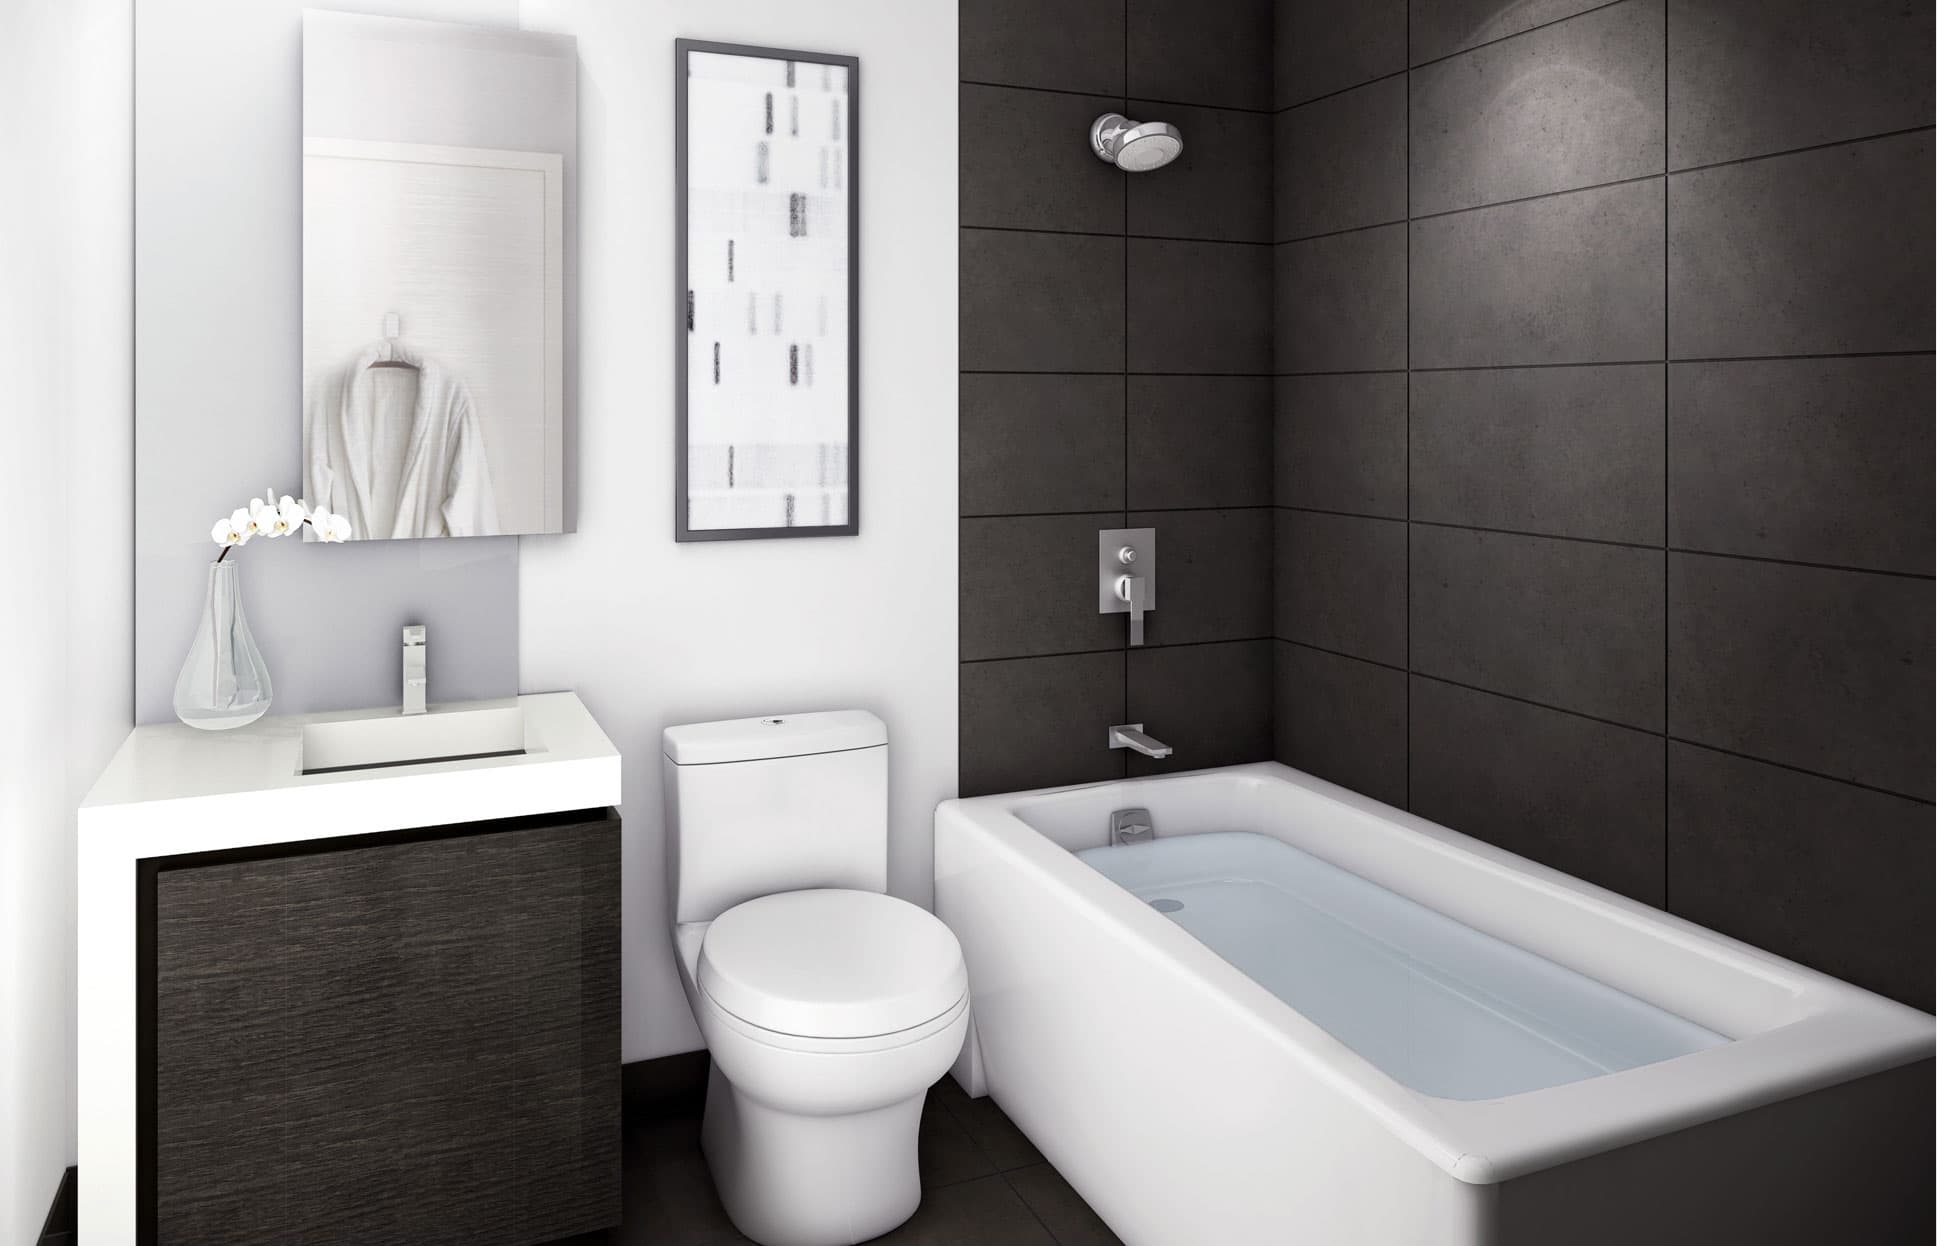 5 Small Bathroom Ideas to Find More Space - Wohomen on Small Space Small Bathroom Ideas Uk id=86288